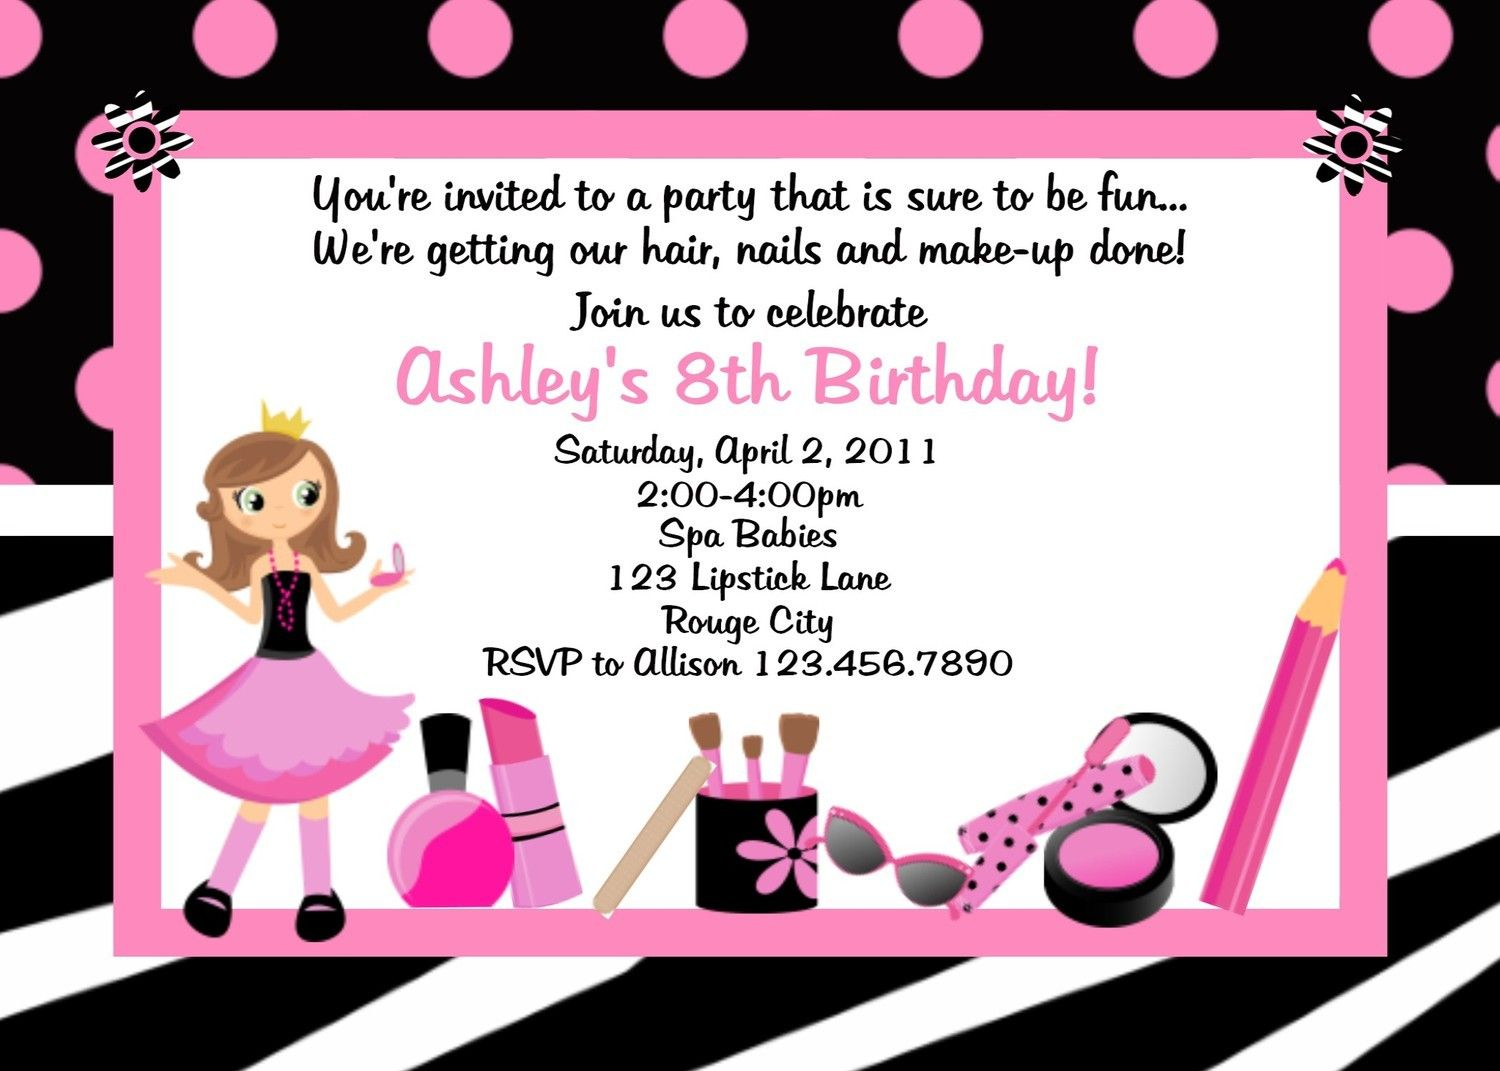 Free Printable Birthday Party Invitations No Download | Spa ...